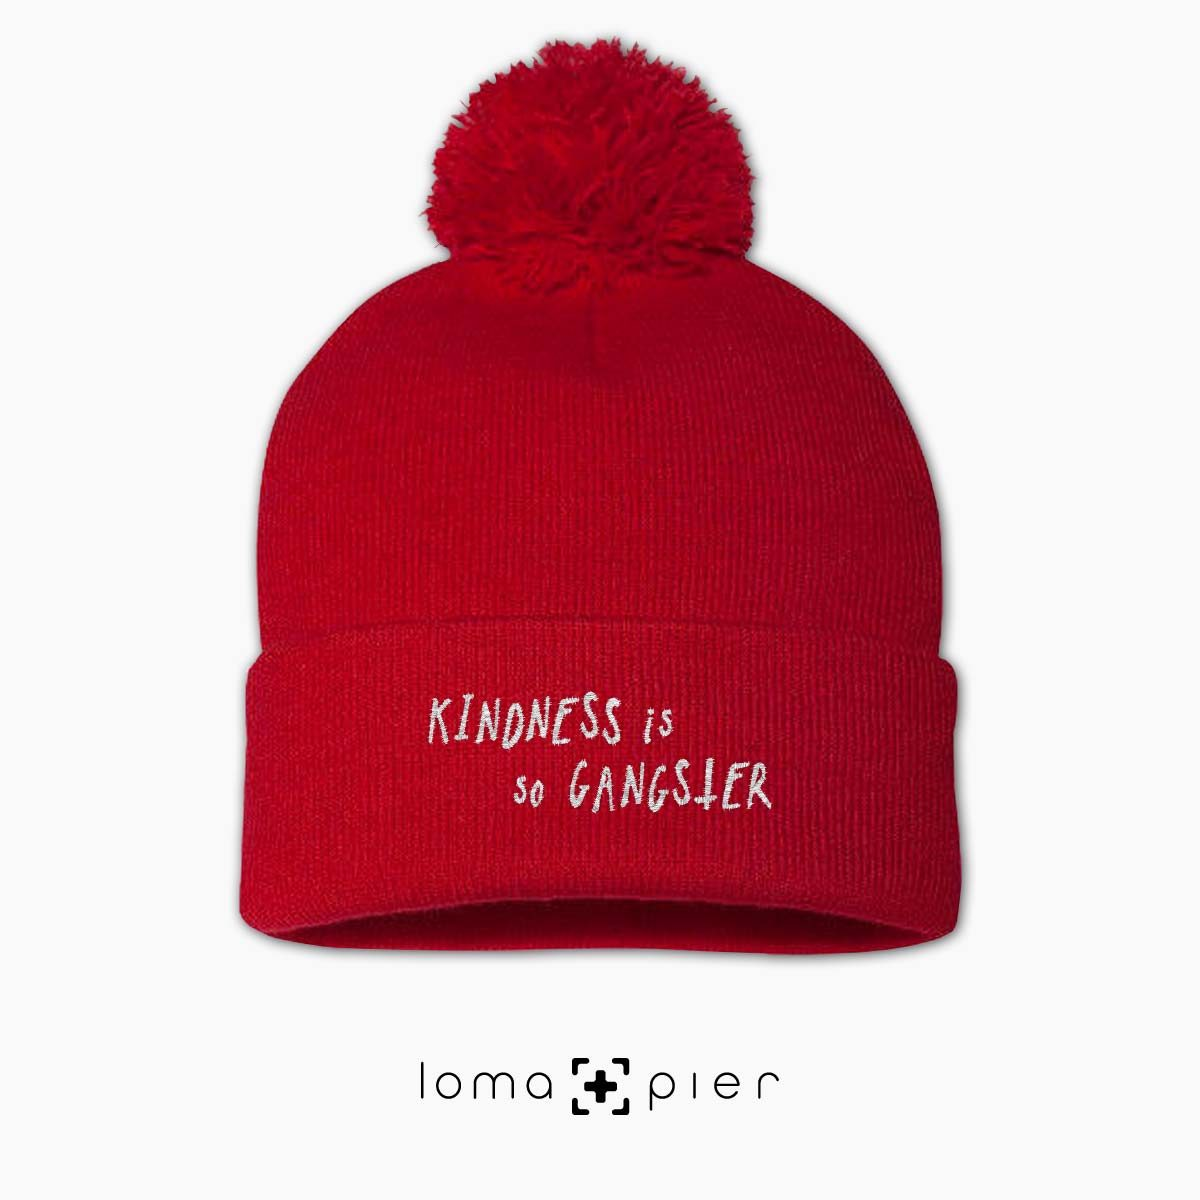 KINDNESS IS SO GANGSTER typography embroidered on a red pom pom beanie with white thread by loma+pier hat store